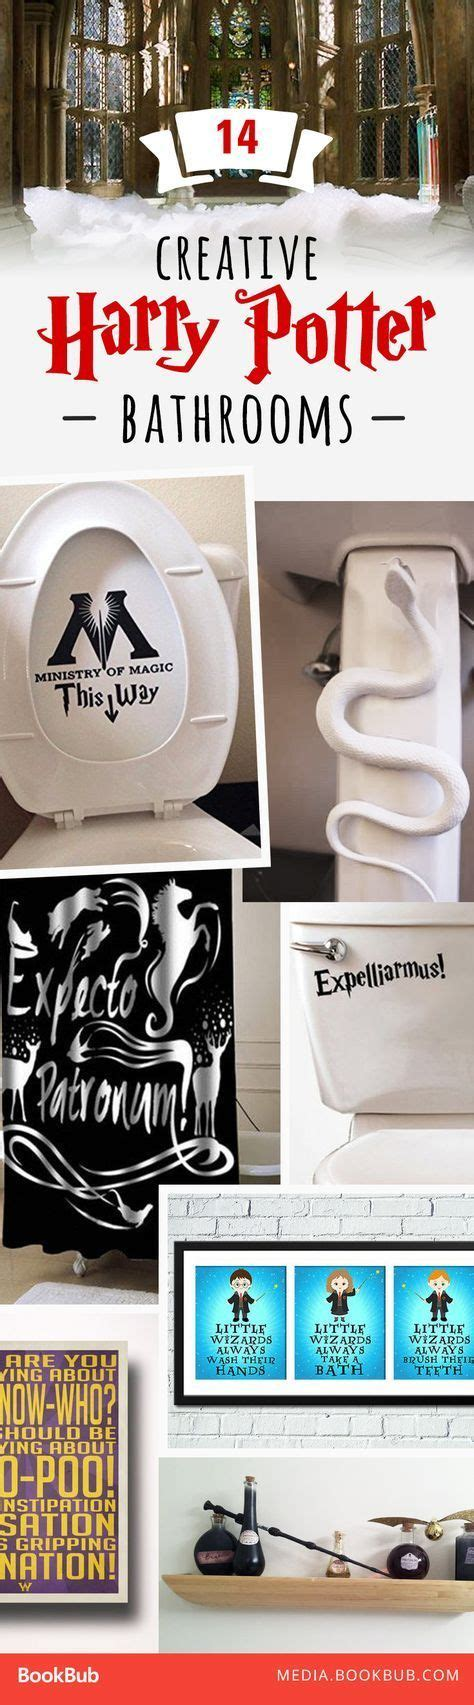 bathroom gift ideas best 25 harry potter bathroom ideas on harry